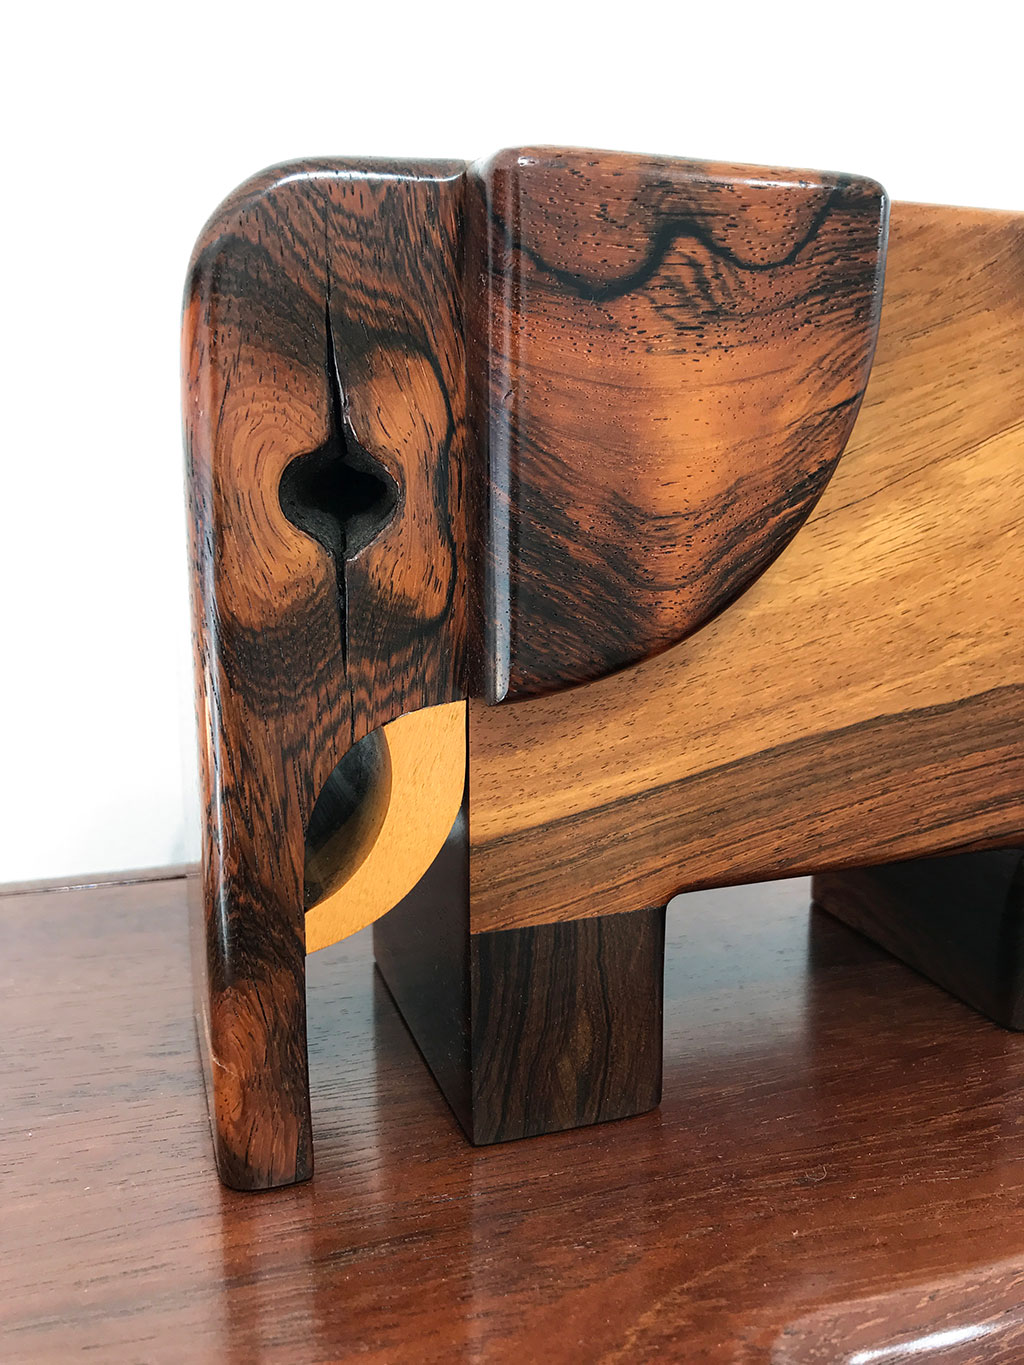 Made to Play, Pamela Weir-Quiton, Little ELLA, 1972, Brazilian Rosewood, Maple Tusk, Craft in America